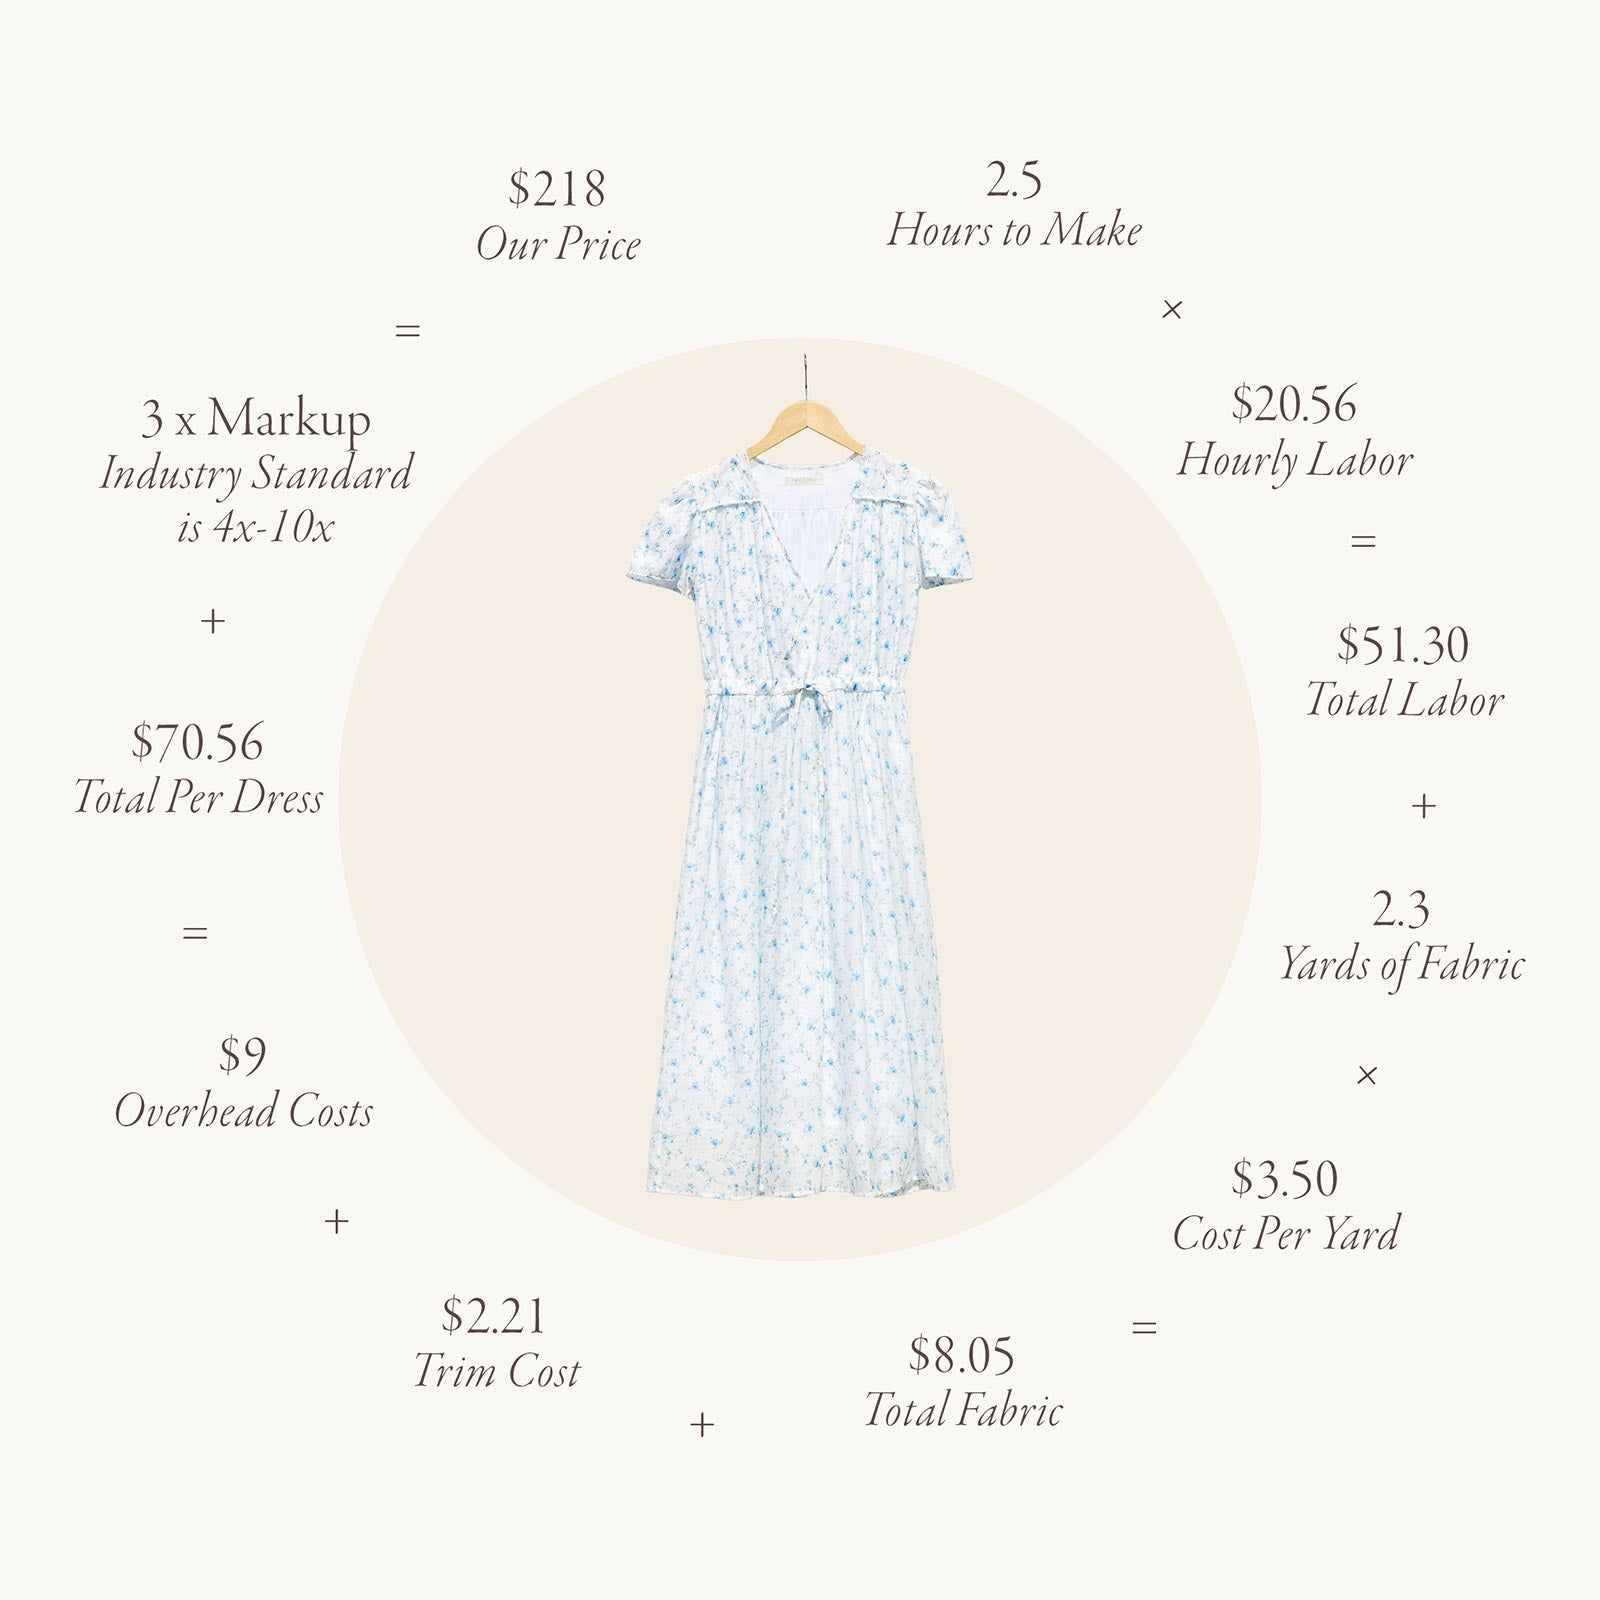 True cost of a Dress